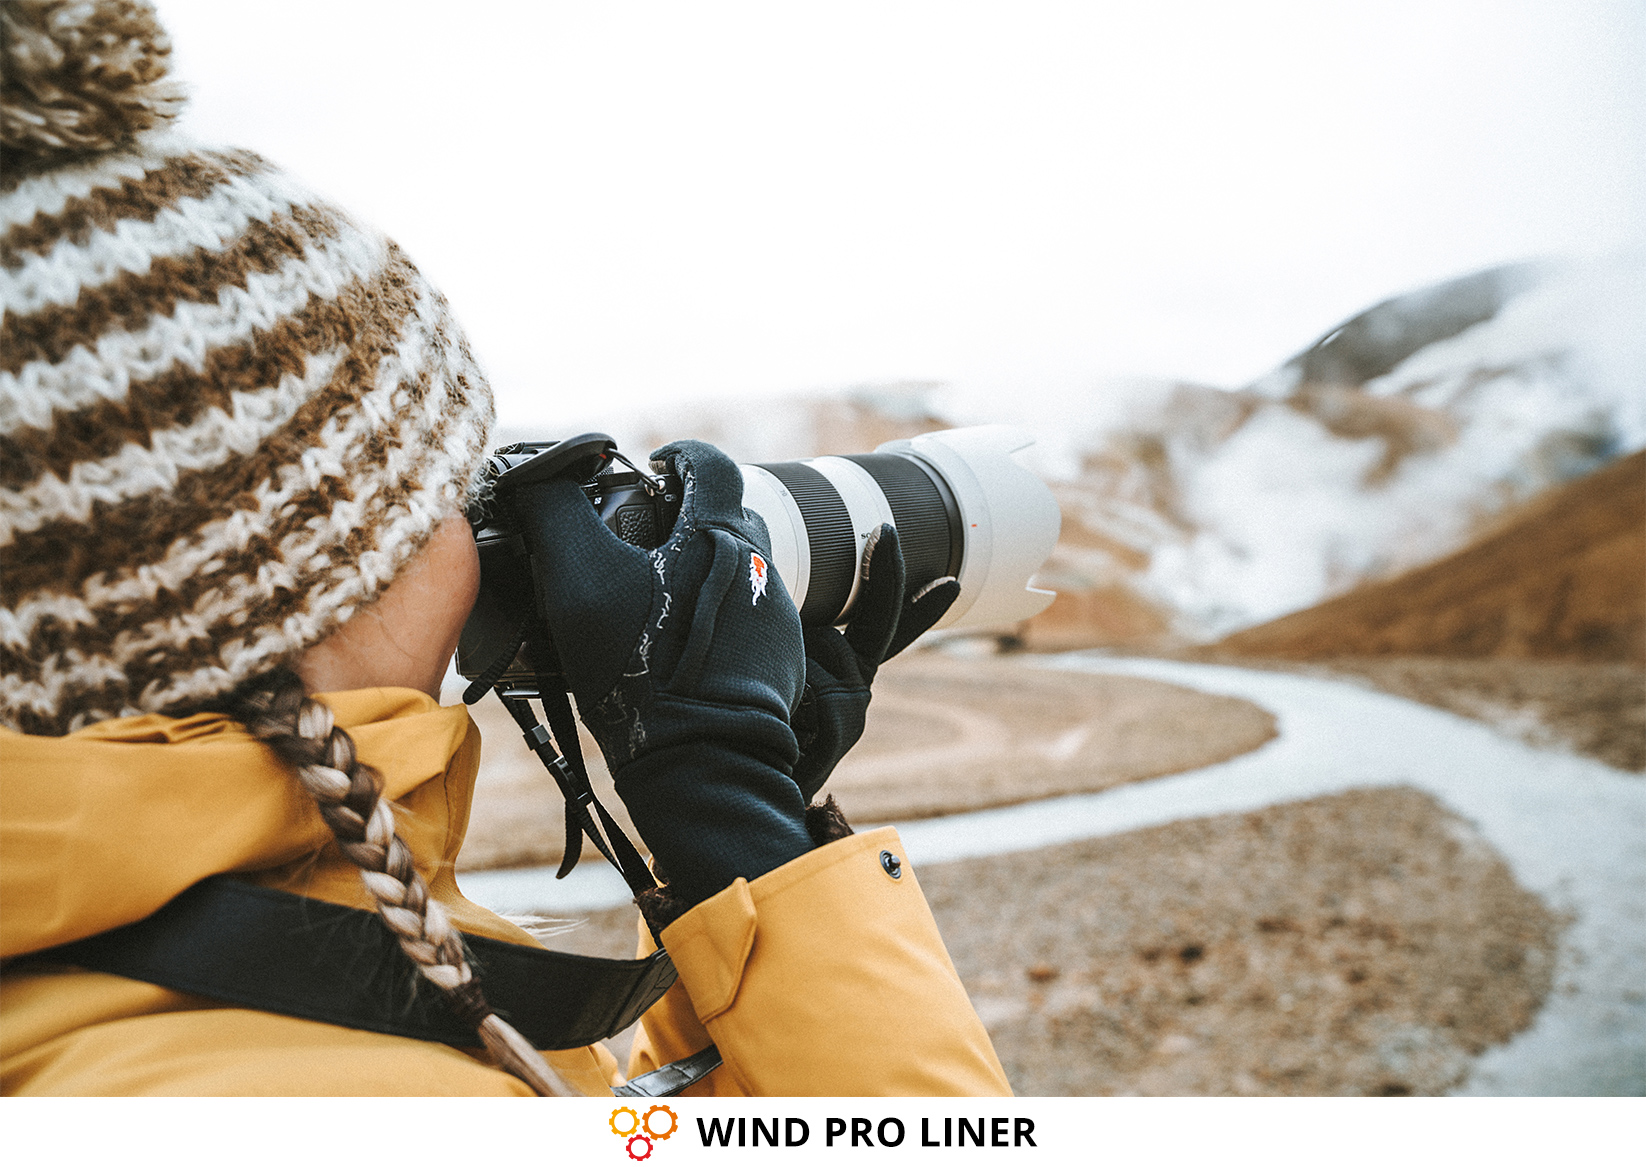 Photographe & gants photo WIND PRO LINER de THE HEAT COMPANY